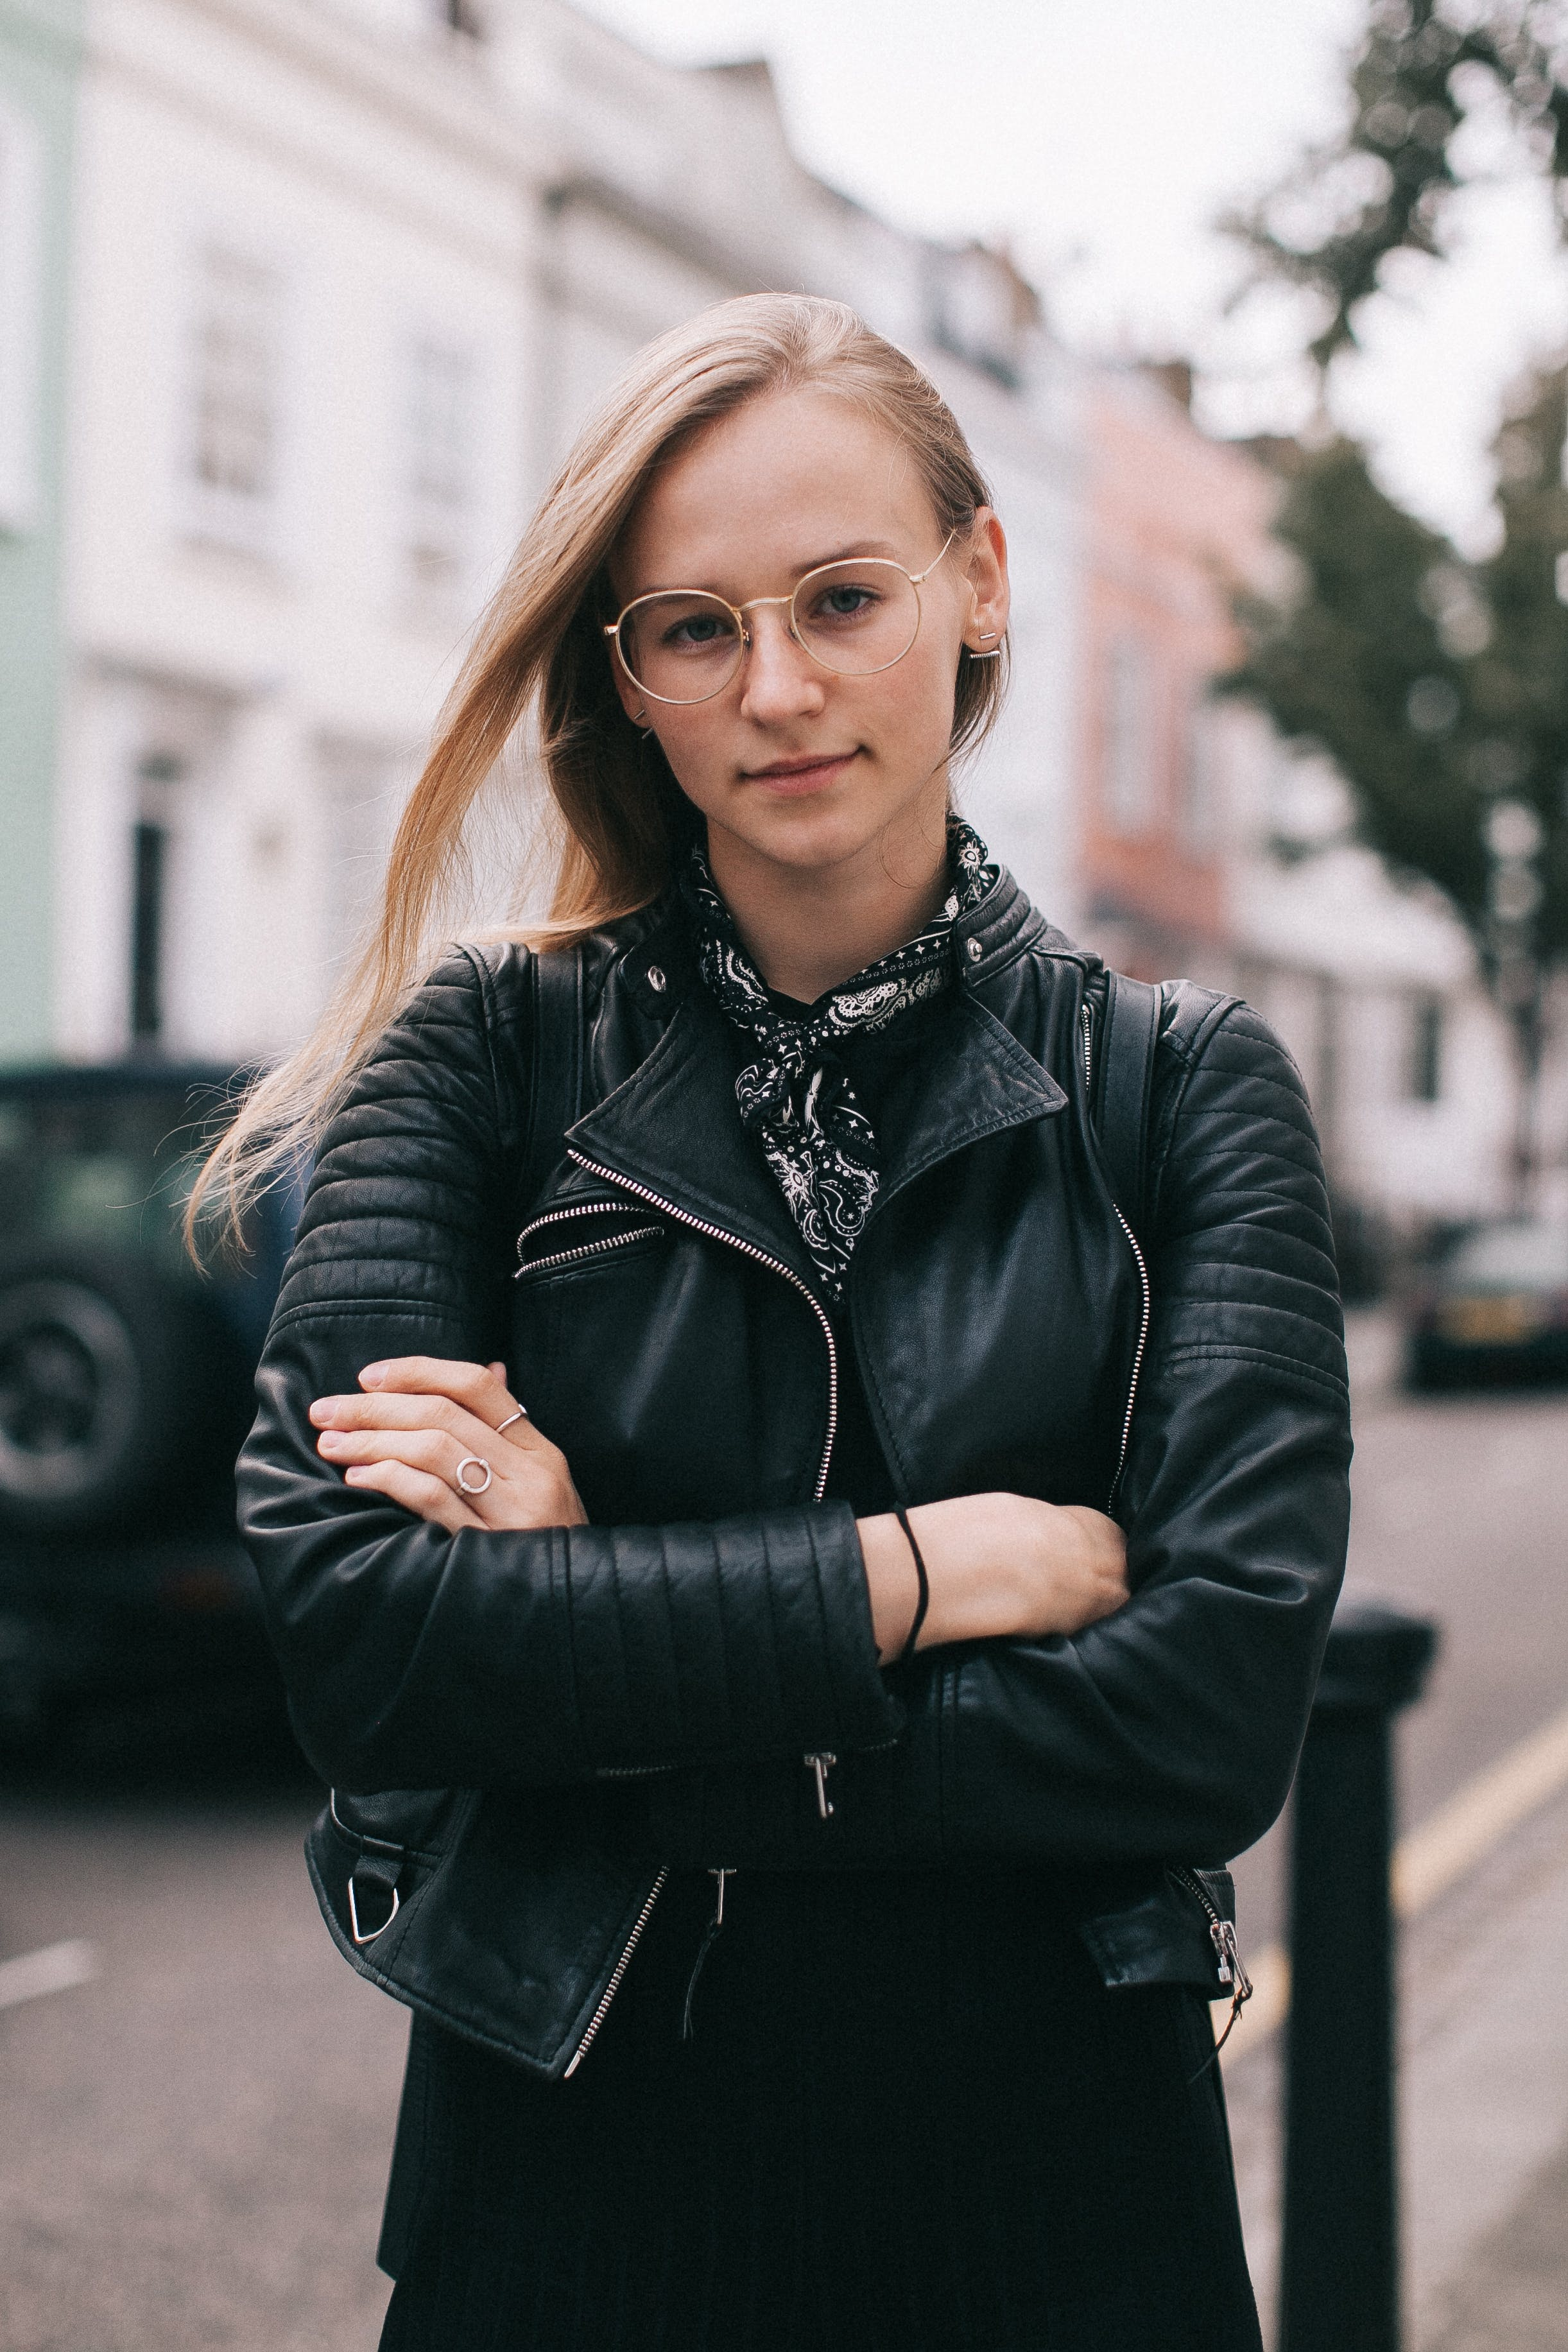 Woman in Black Leather Jacket Cross Arms